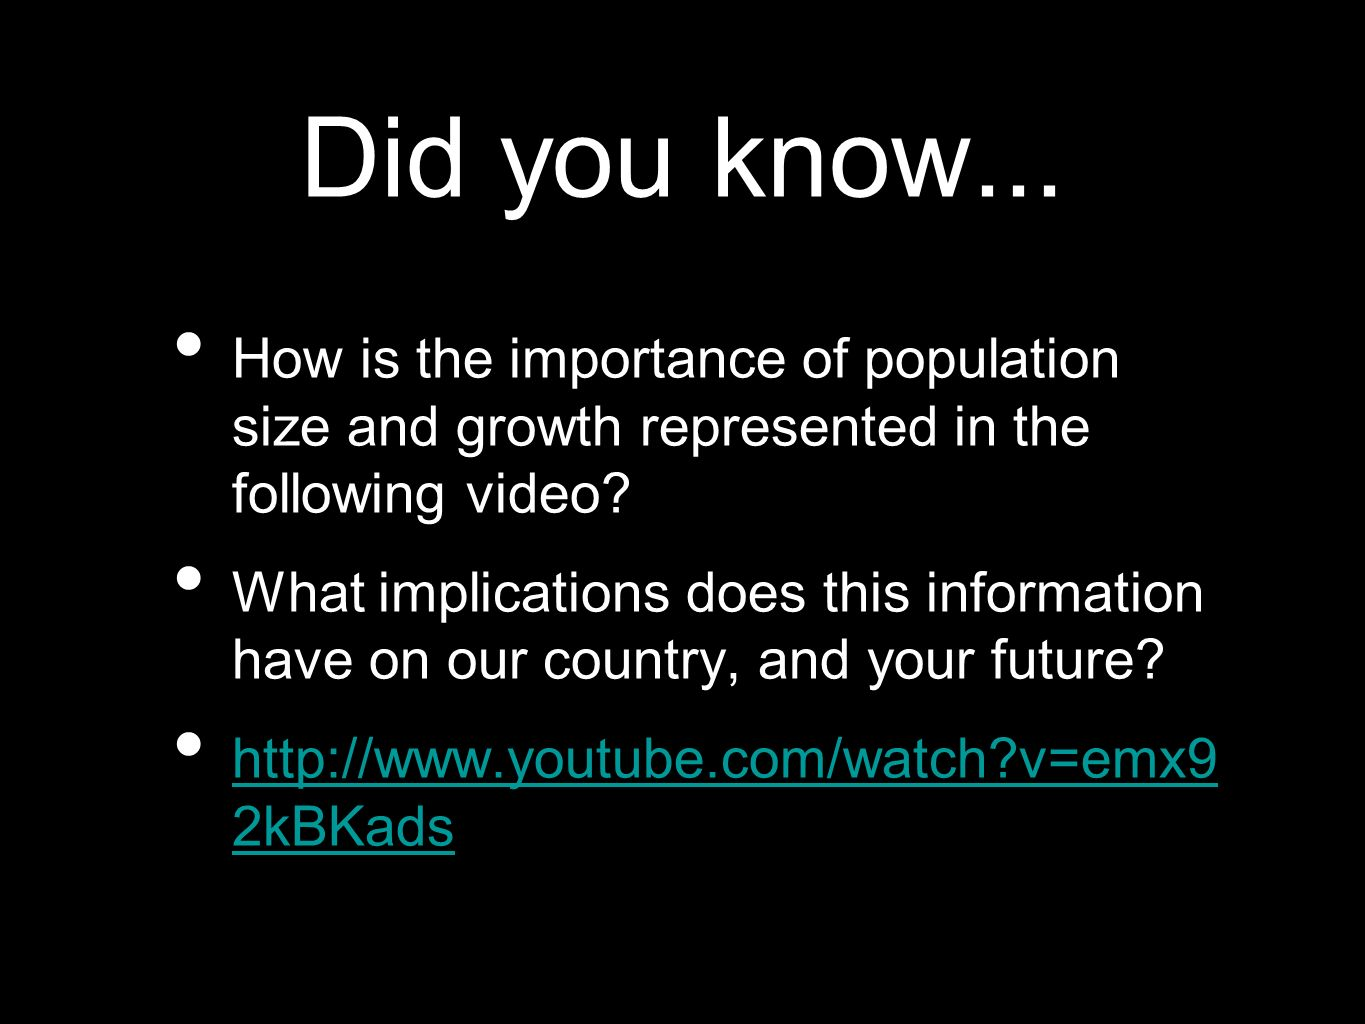 Did you know... How is the importance of population size and growth represented in the following video